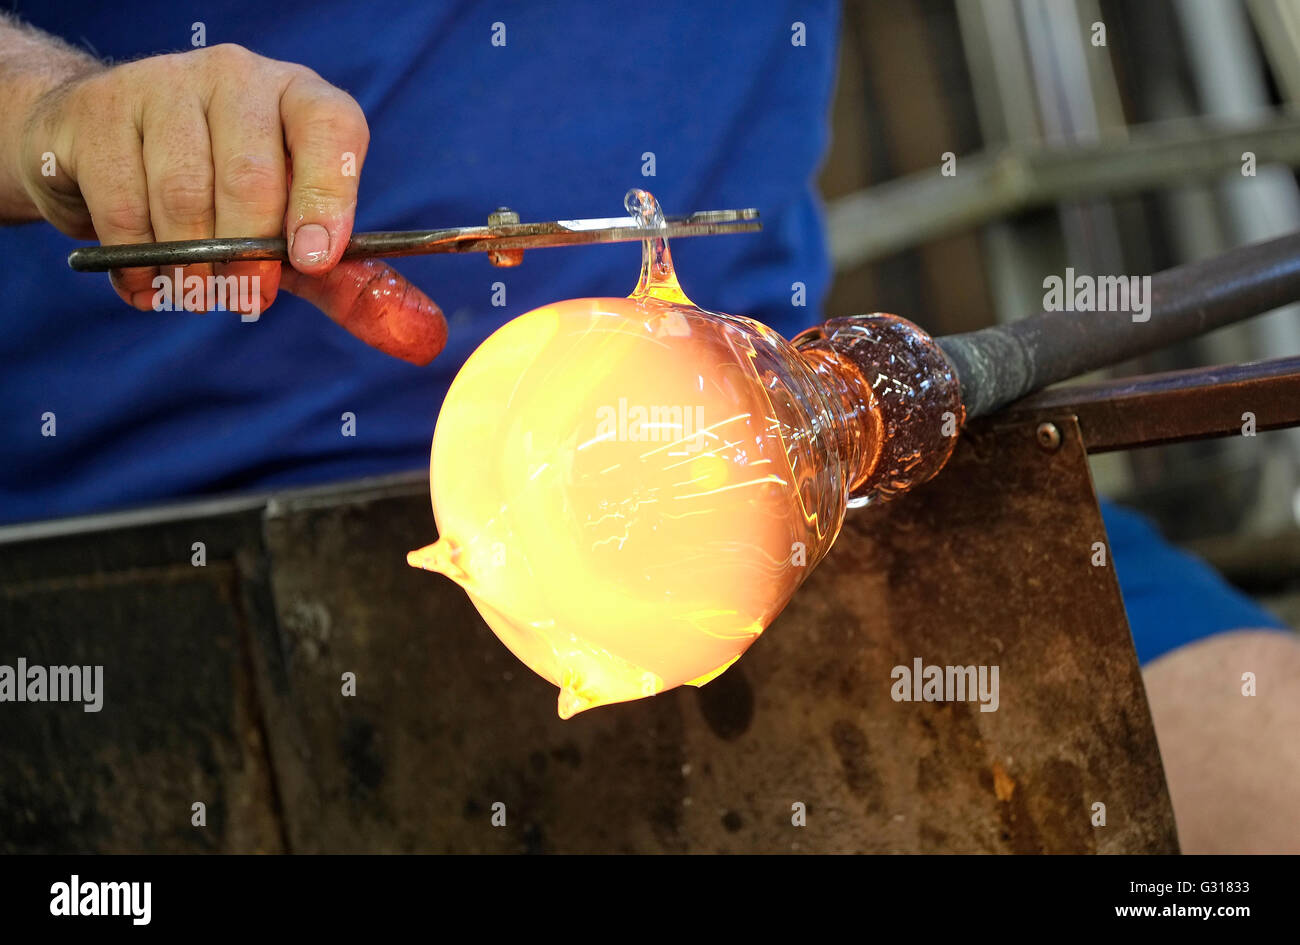 glass maker craftsman shaping ornament - Stock Image